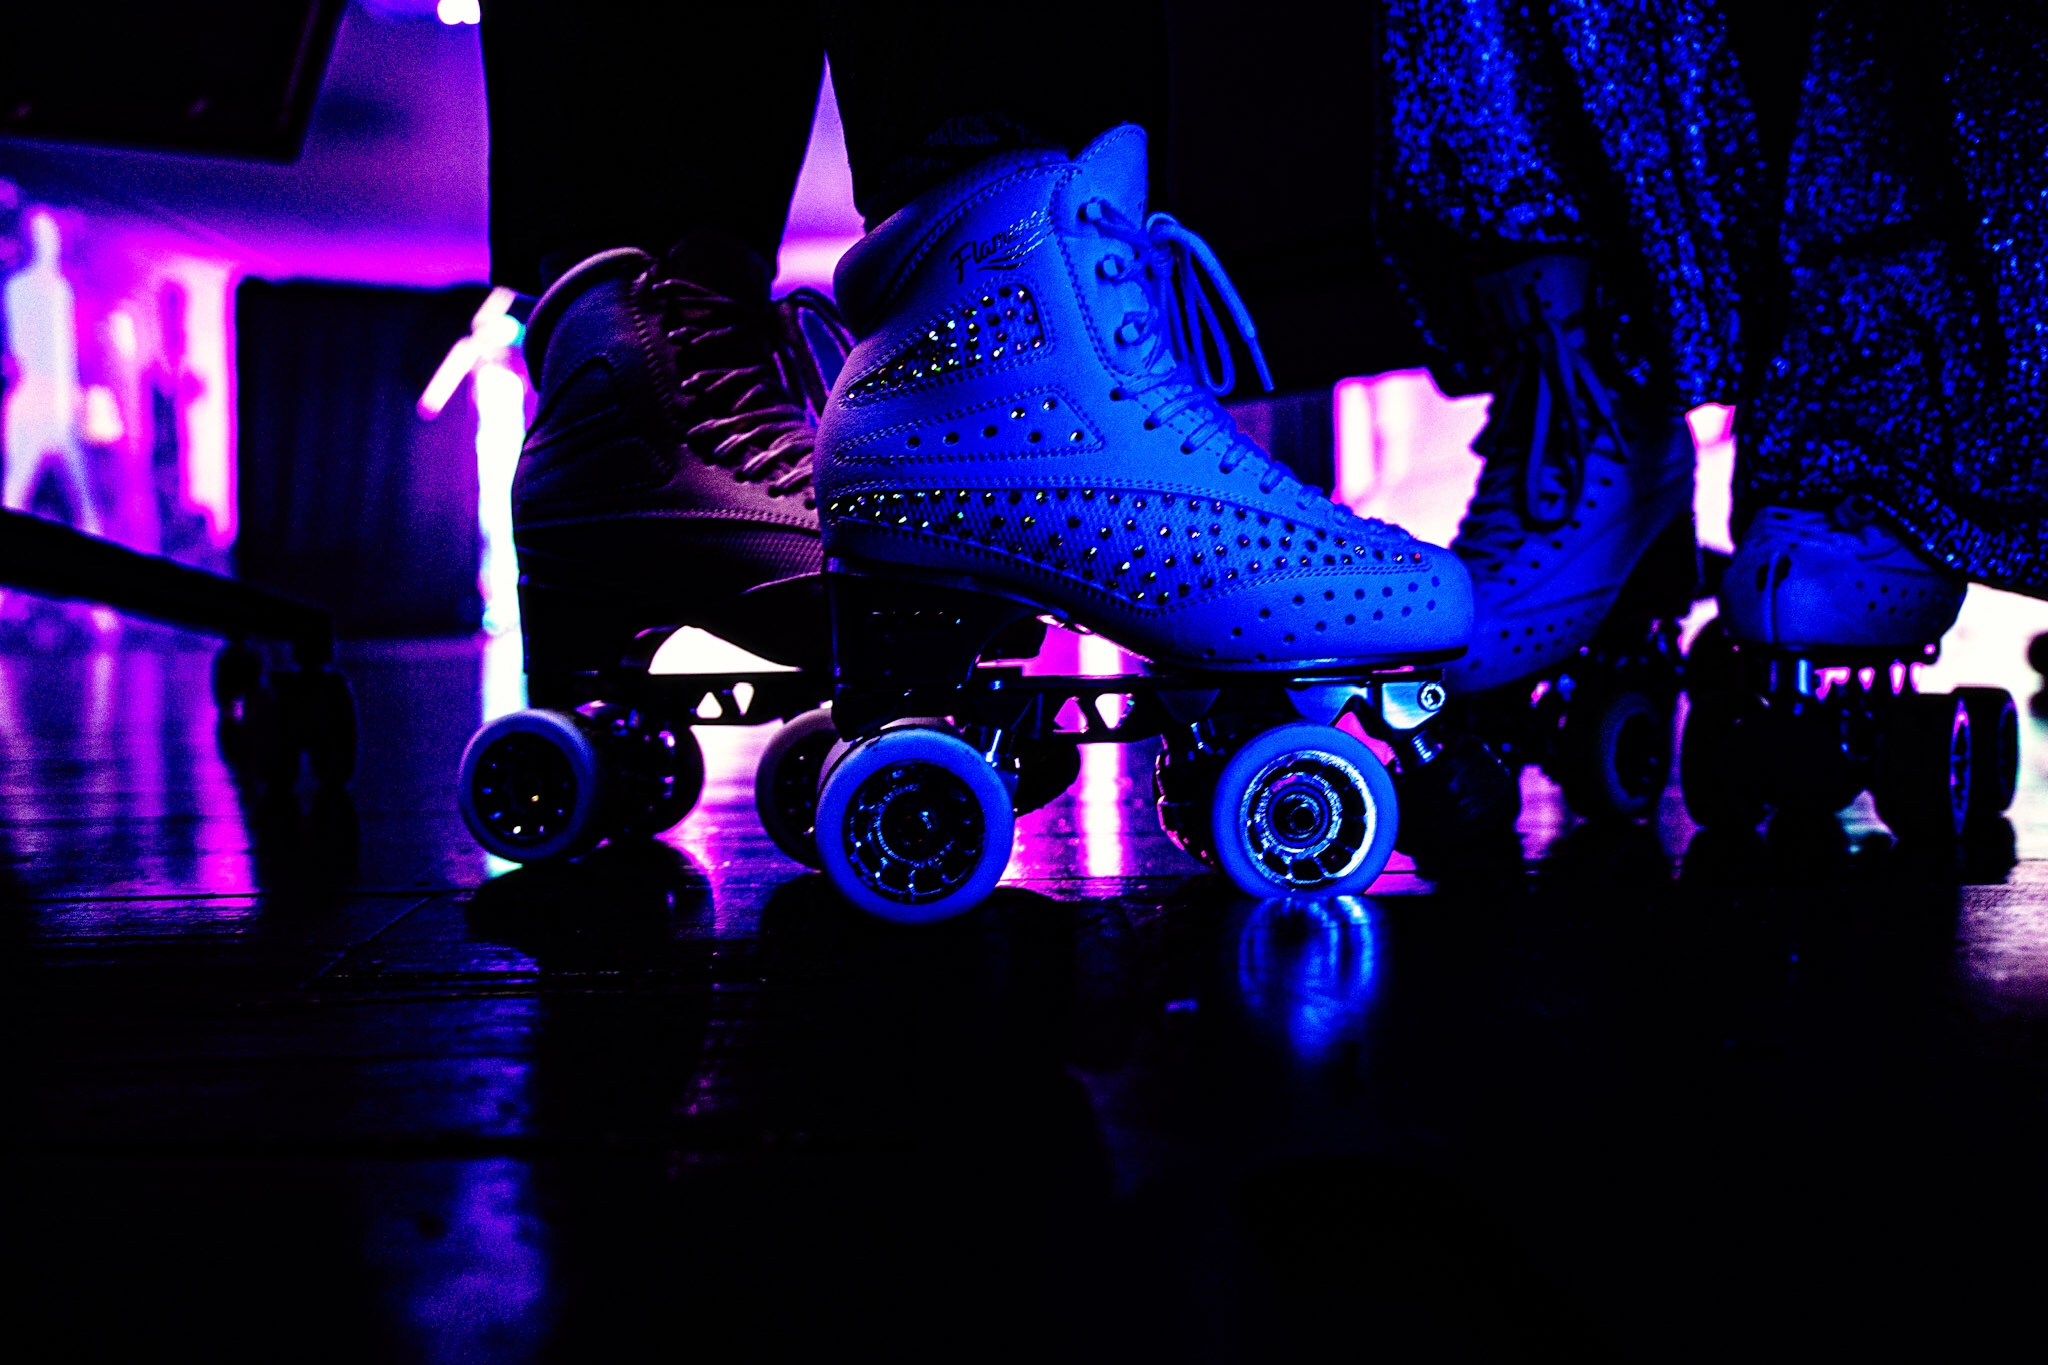 close up of edea roller skates at Raynham Park photoshoot for a performance